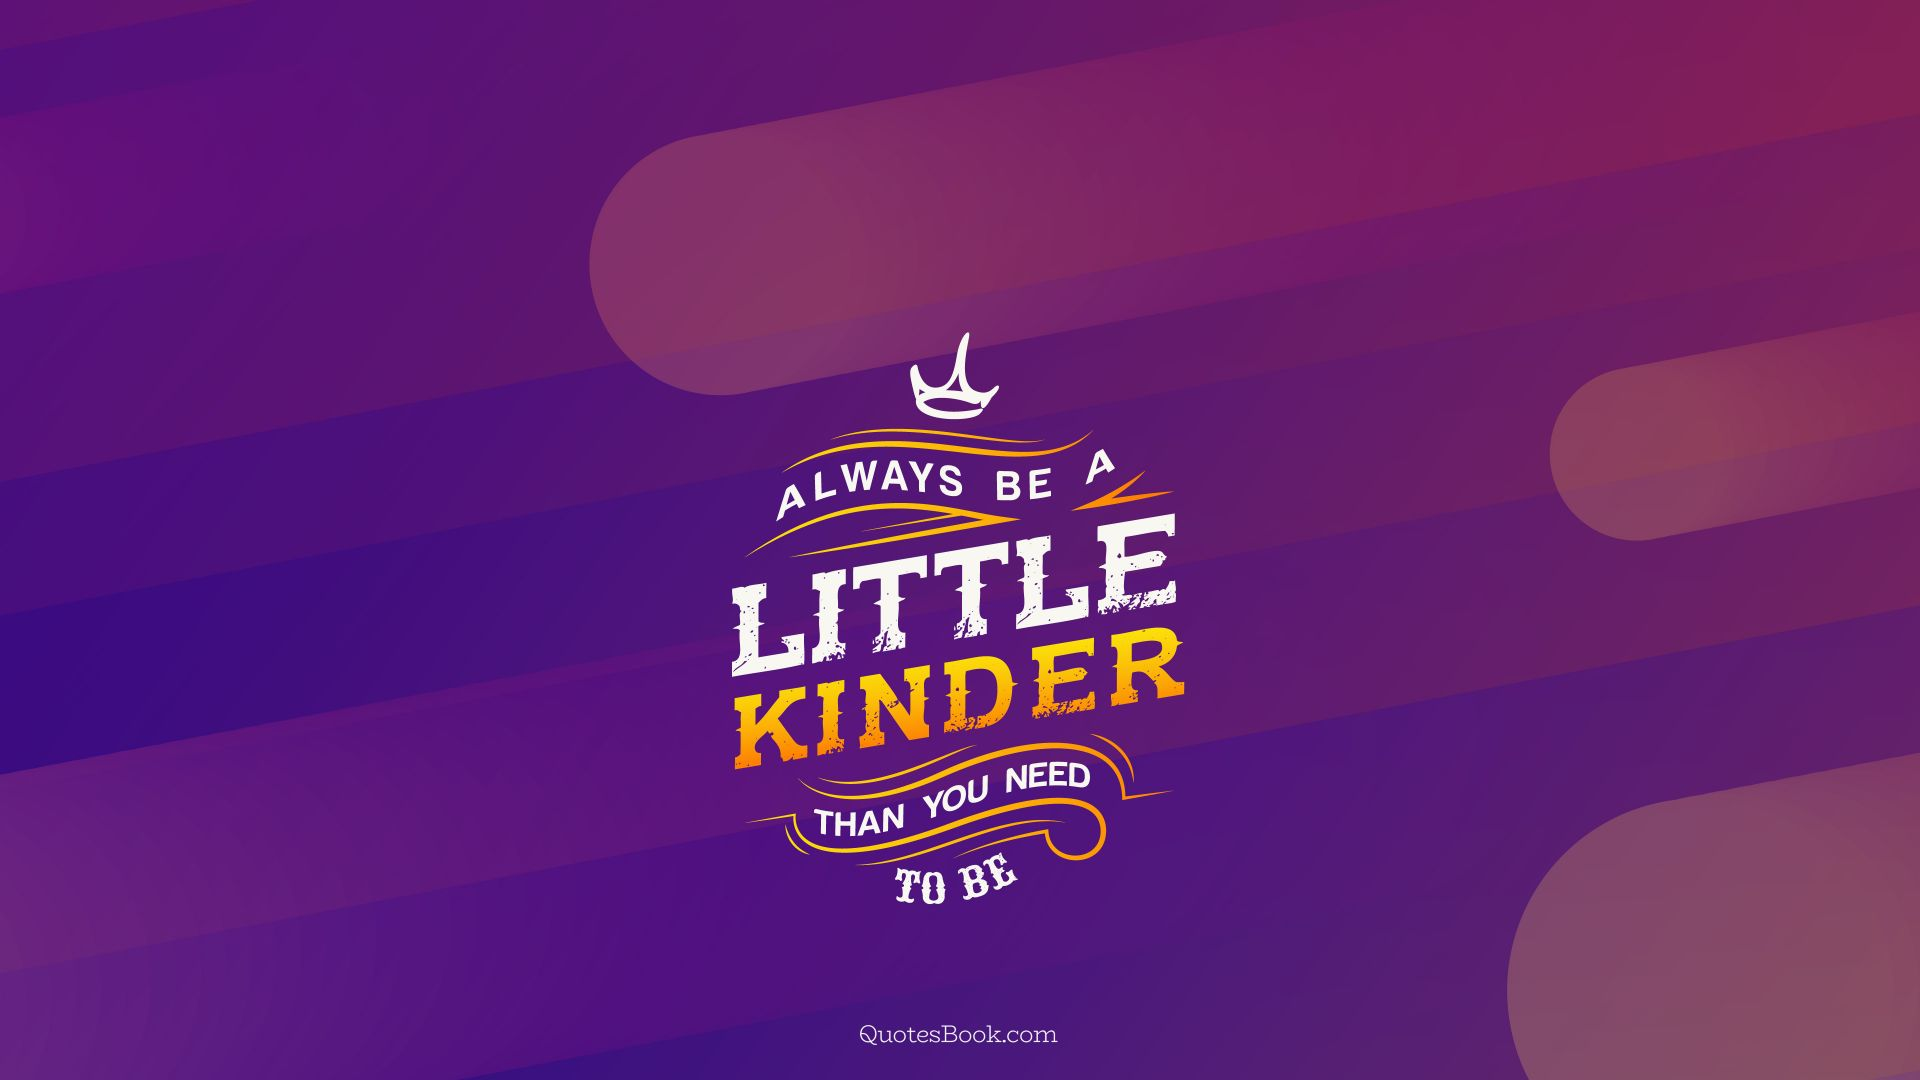 Always be a little kinder than you need to be